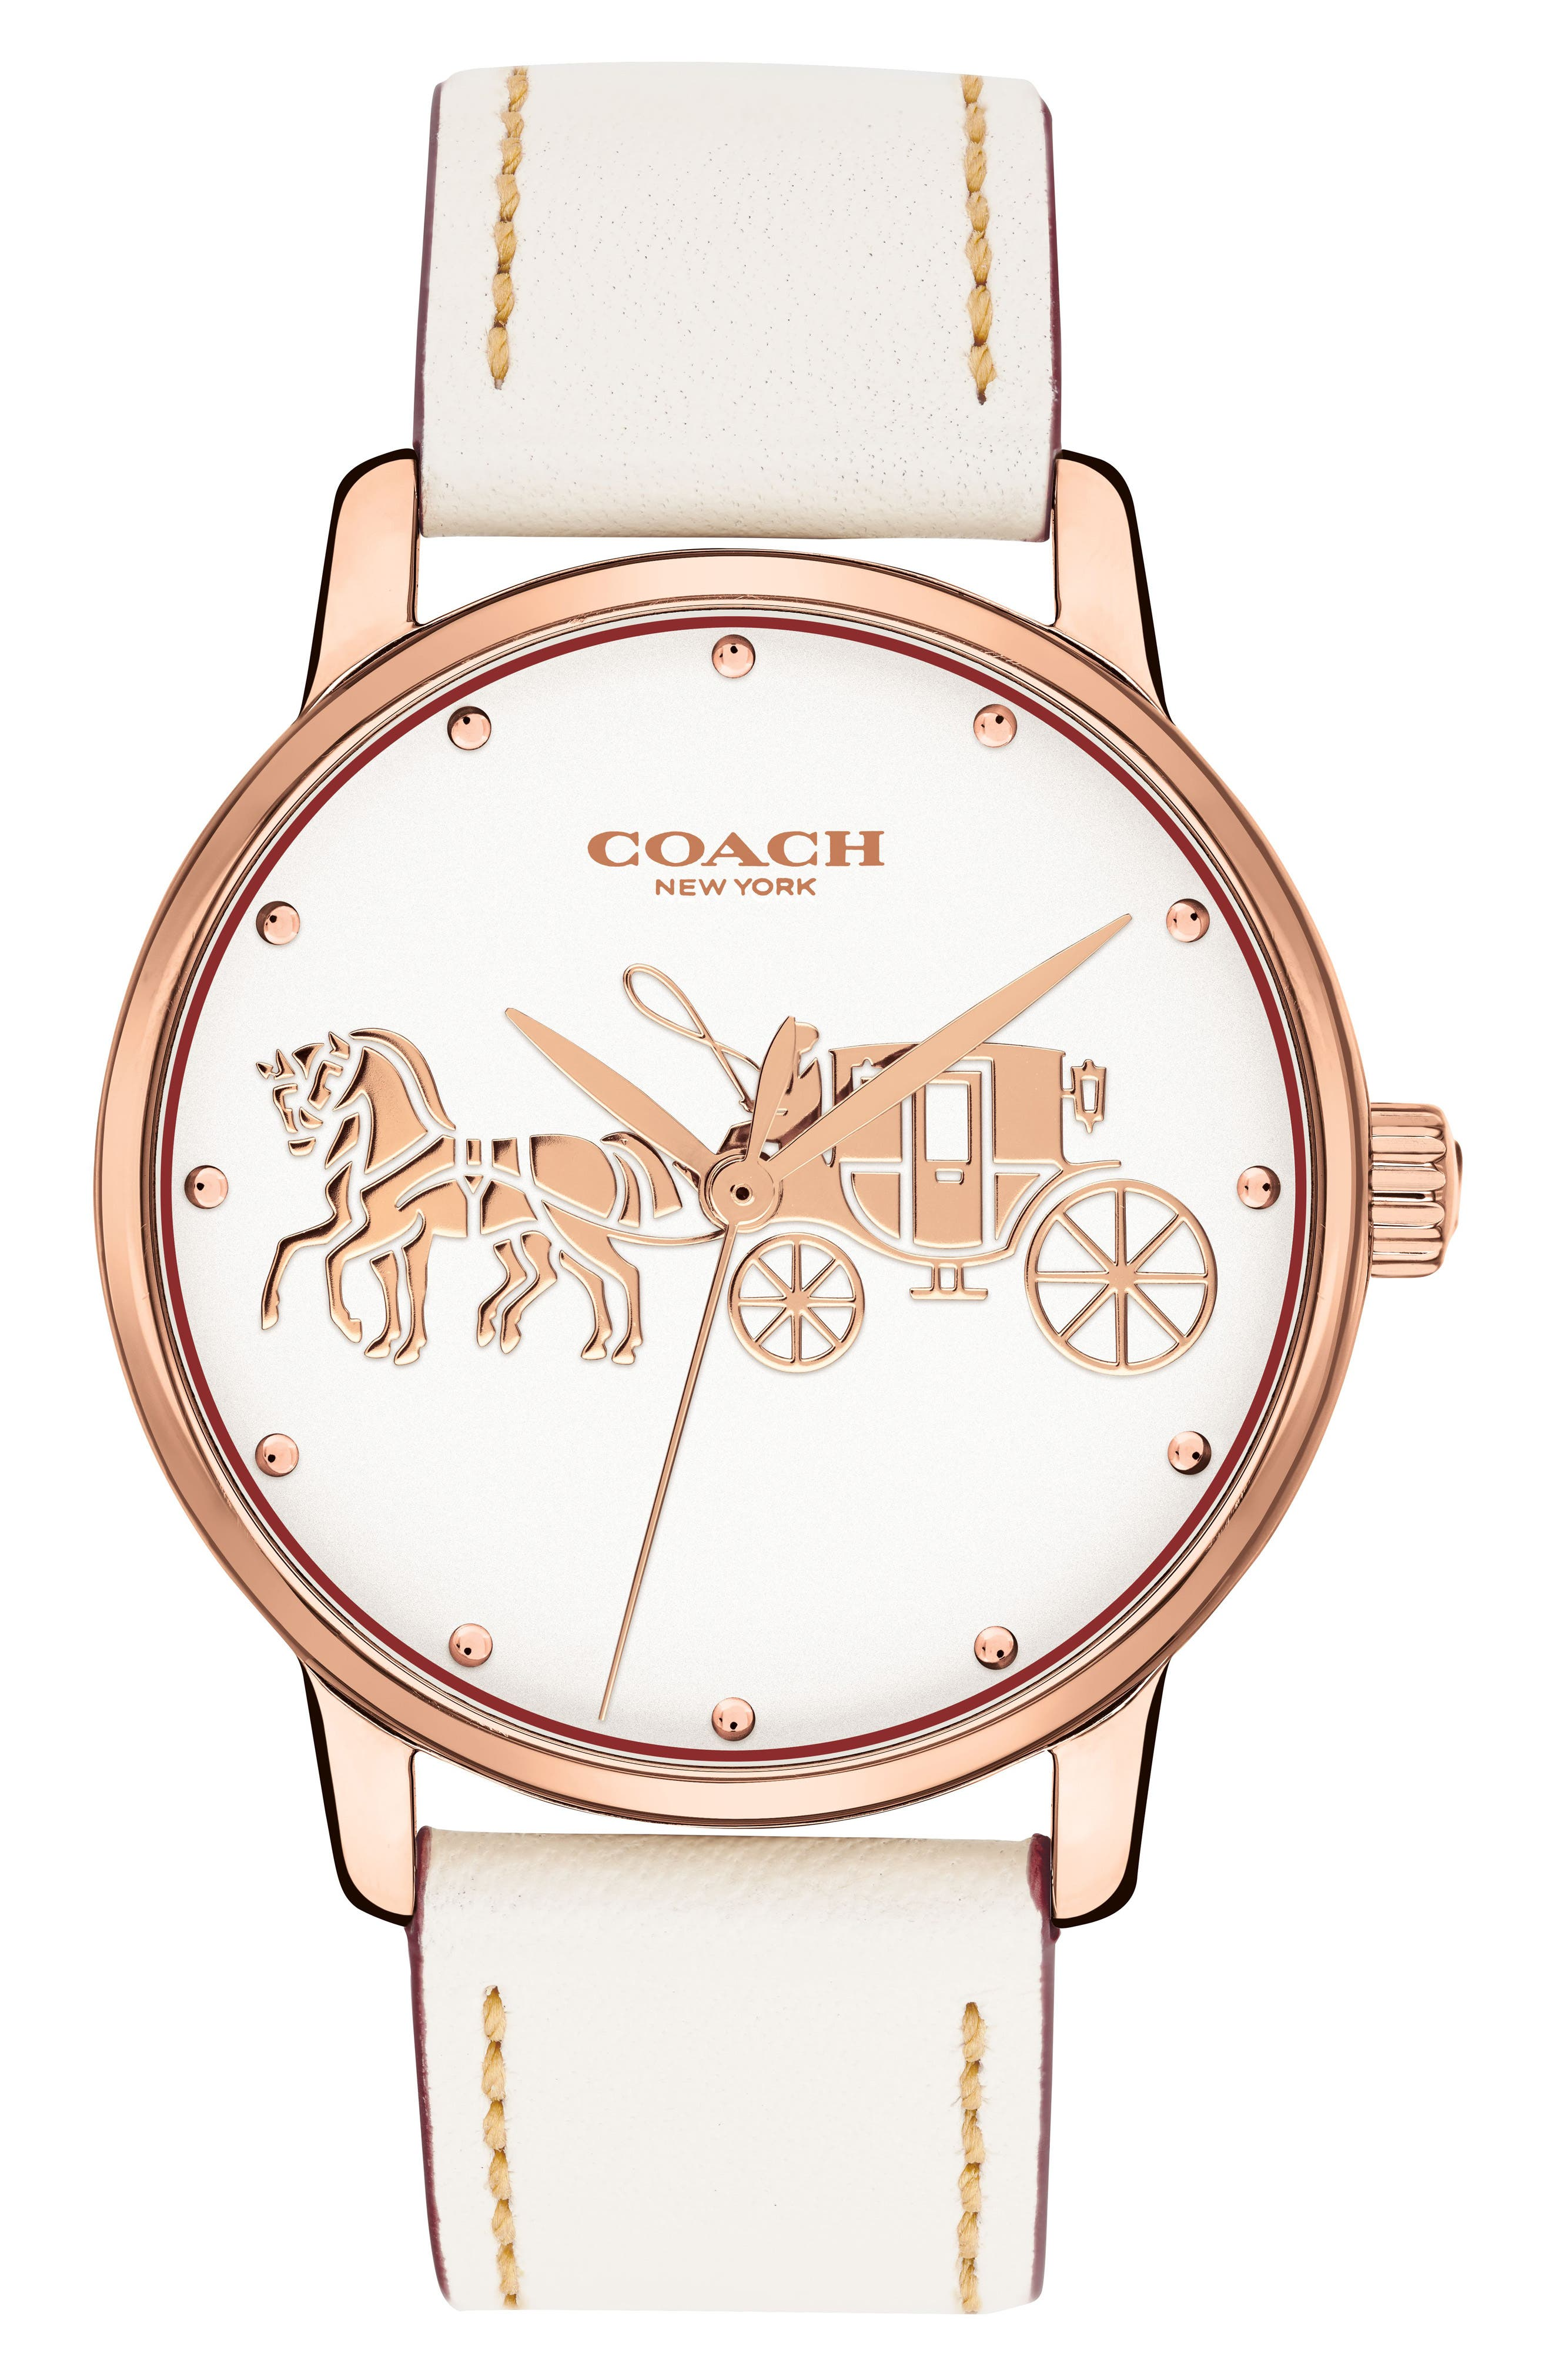 COACH Grand Leather Strap Watch, 36mm